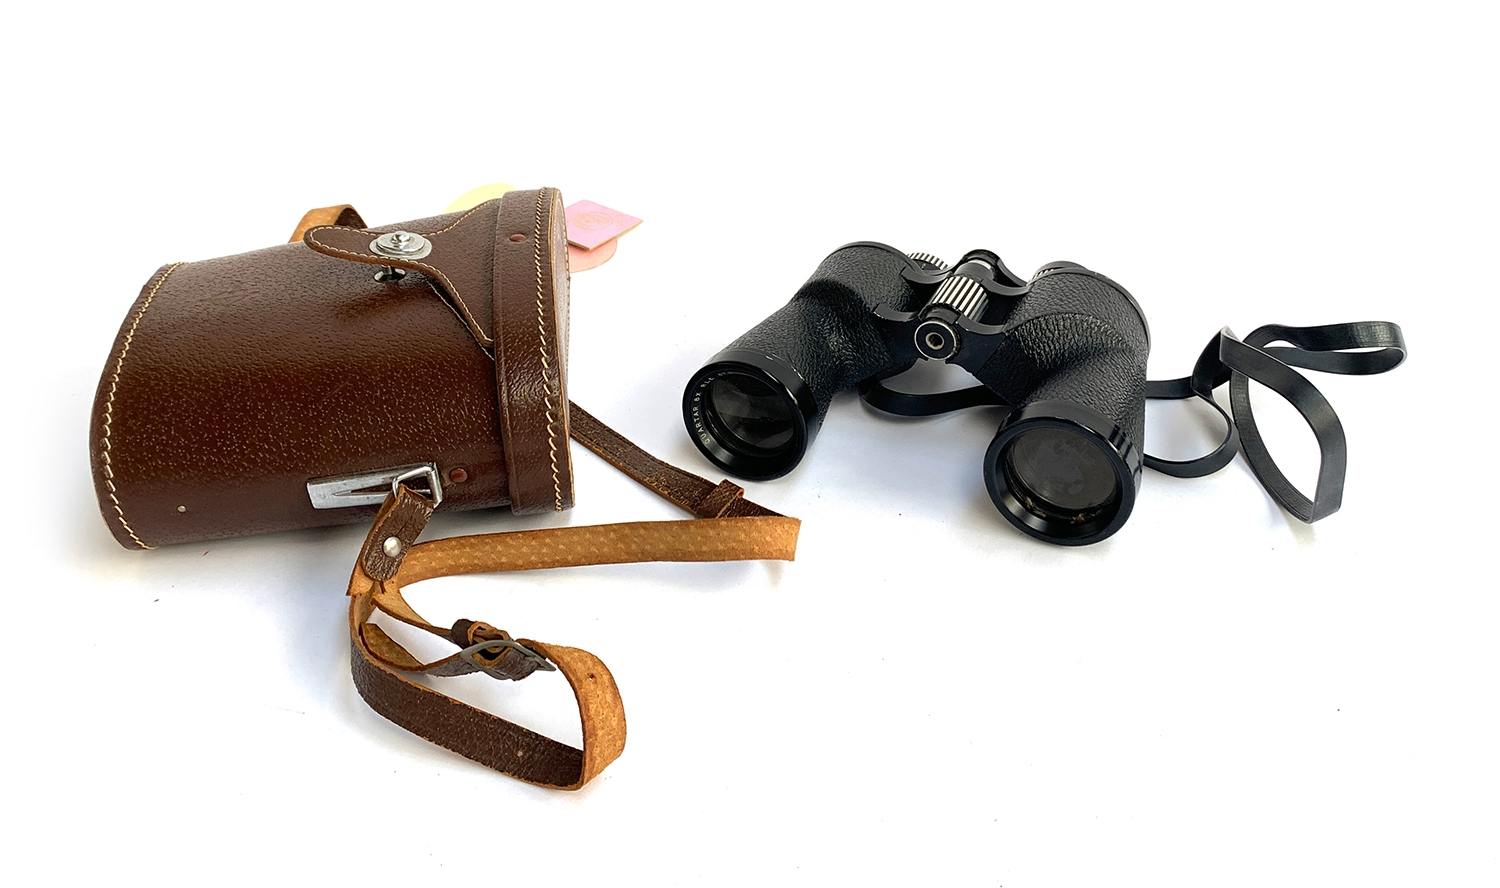 A pair of Swift Saratoga 8x40 binoculars in leather case with racing tags attached